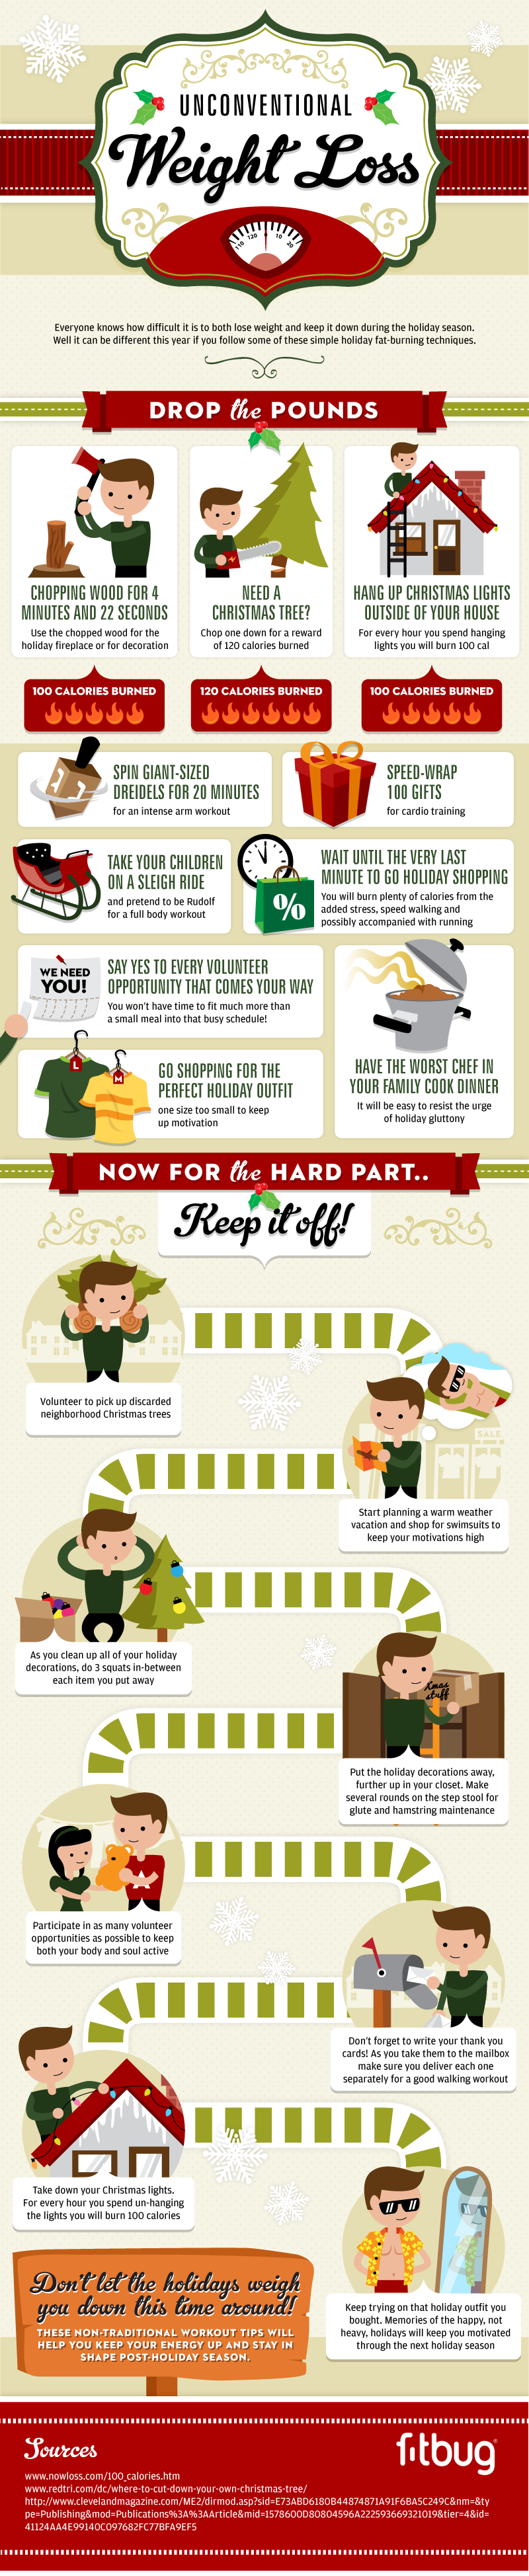 Losing Holiday Weight-Infographic